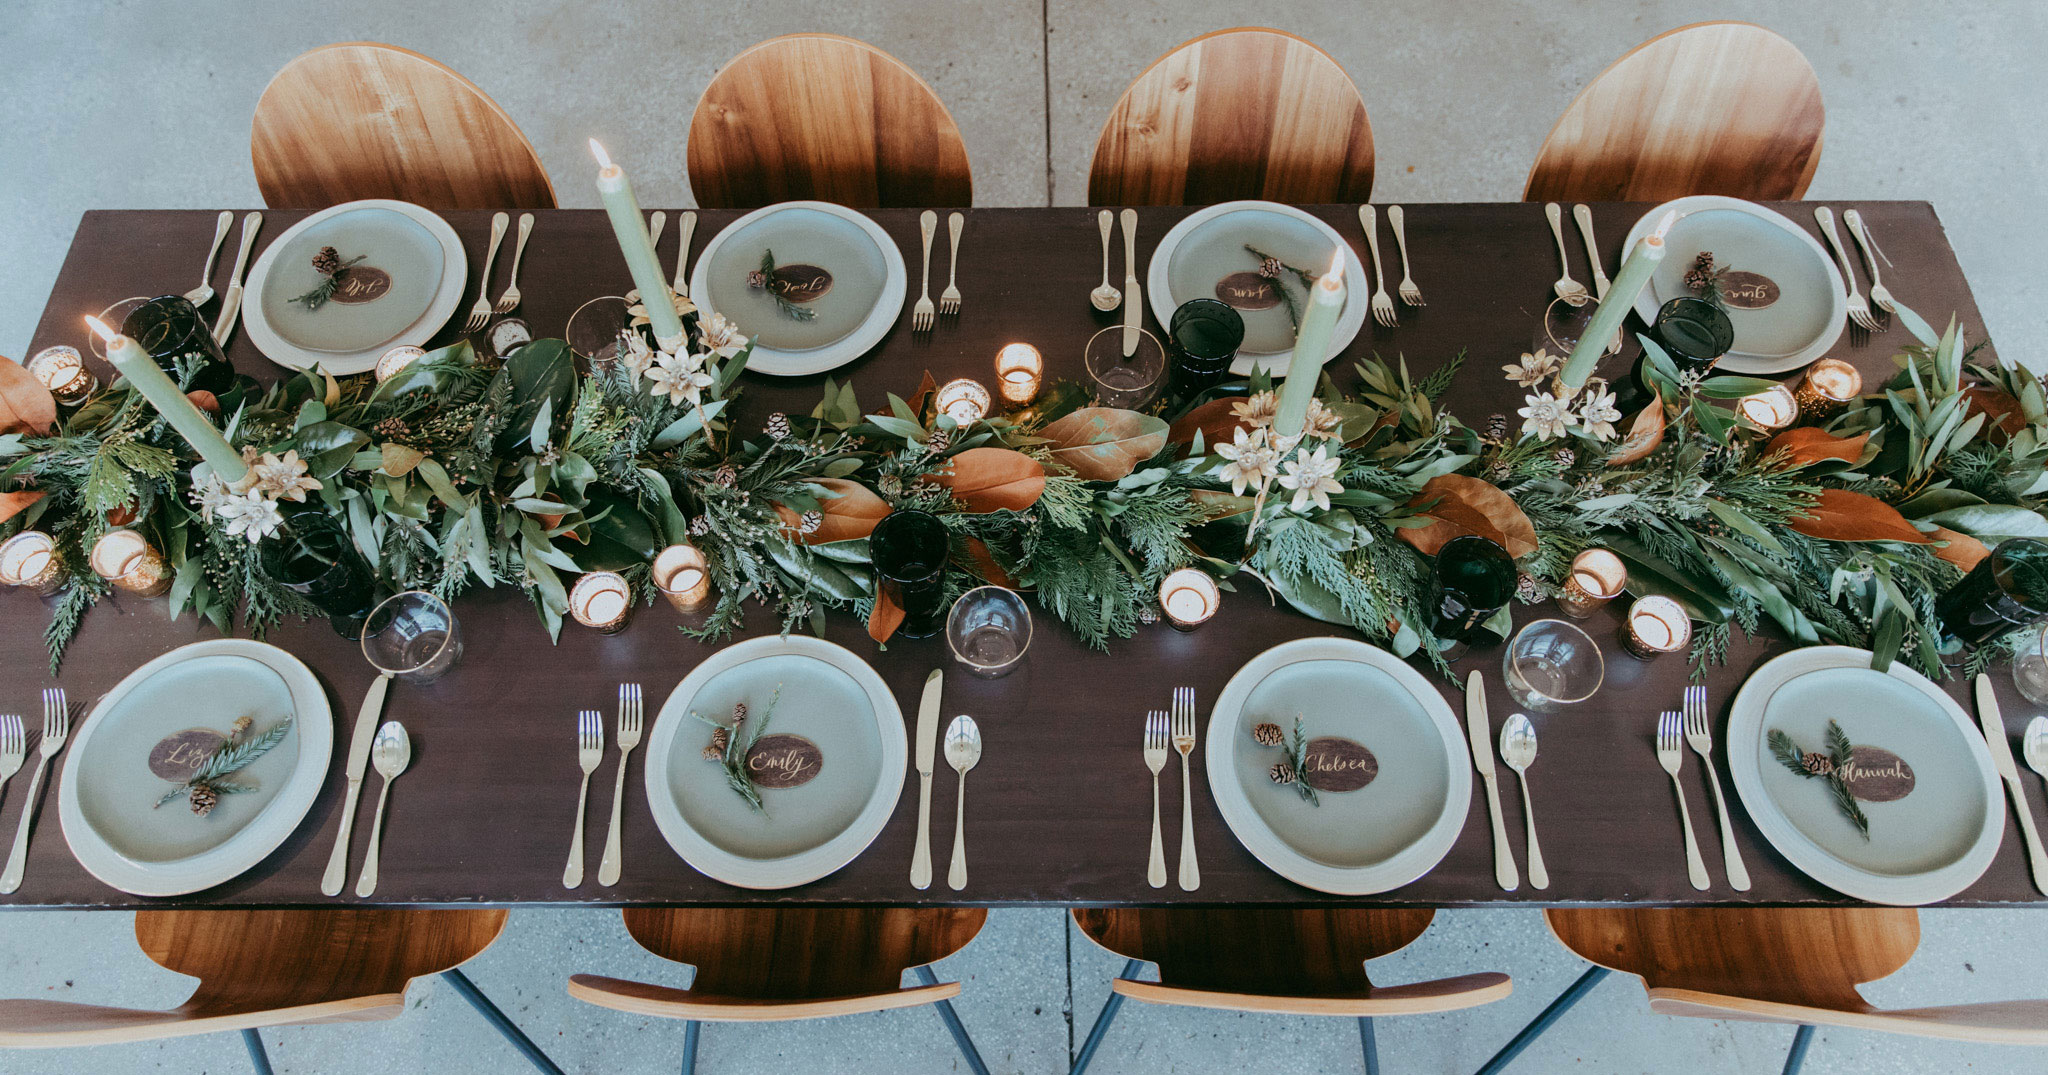 Meaux Space Event - Table